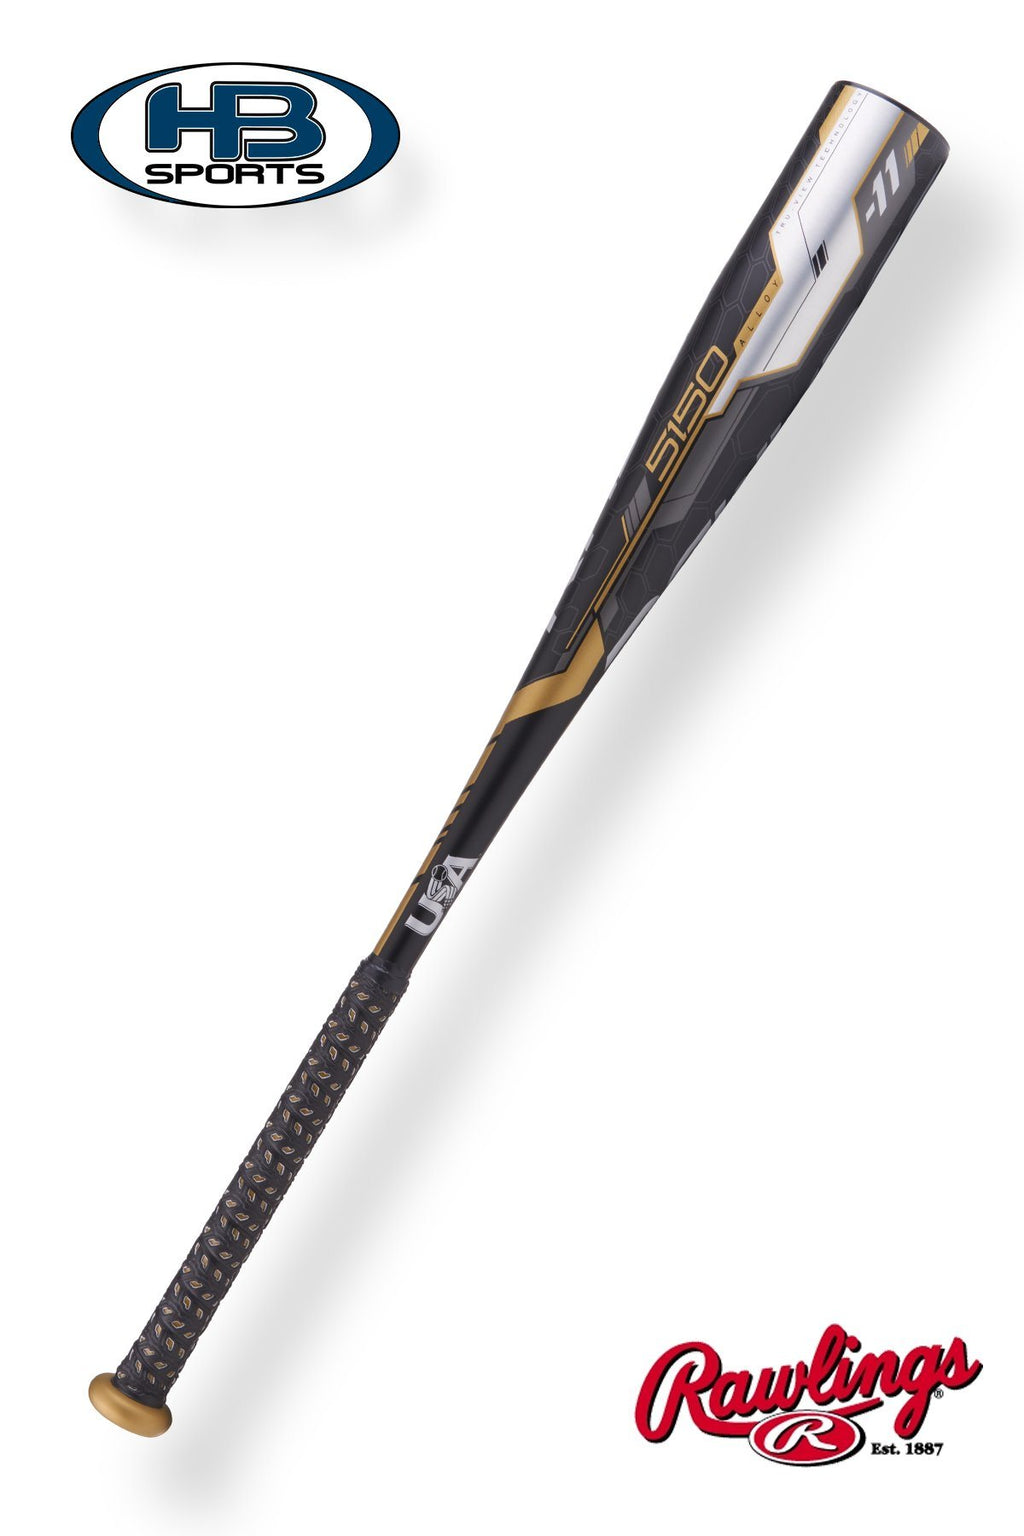 "2018 Rawlings 5150 (-11) 2 5/8"" USA Baseball Bat: US8511 at headbangersports.com"